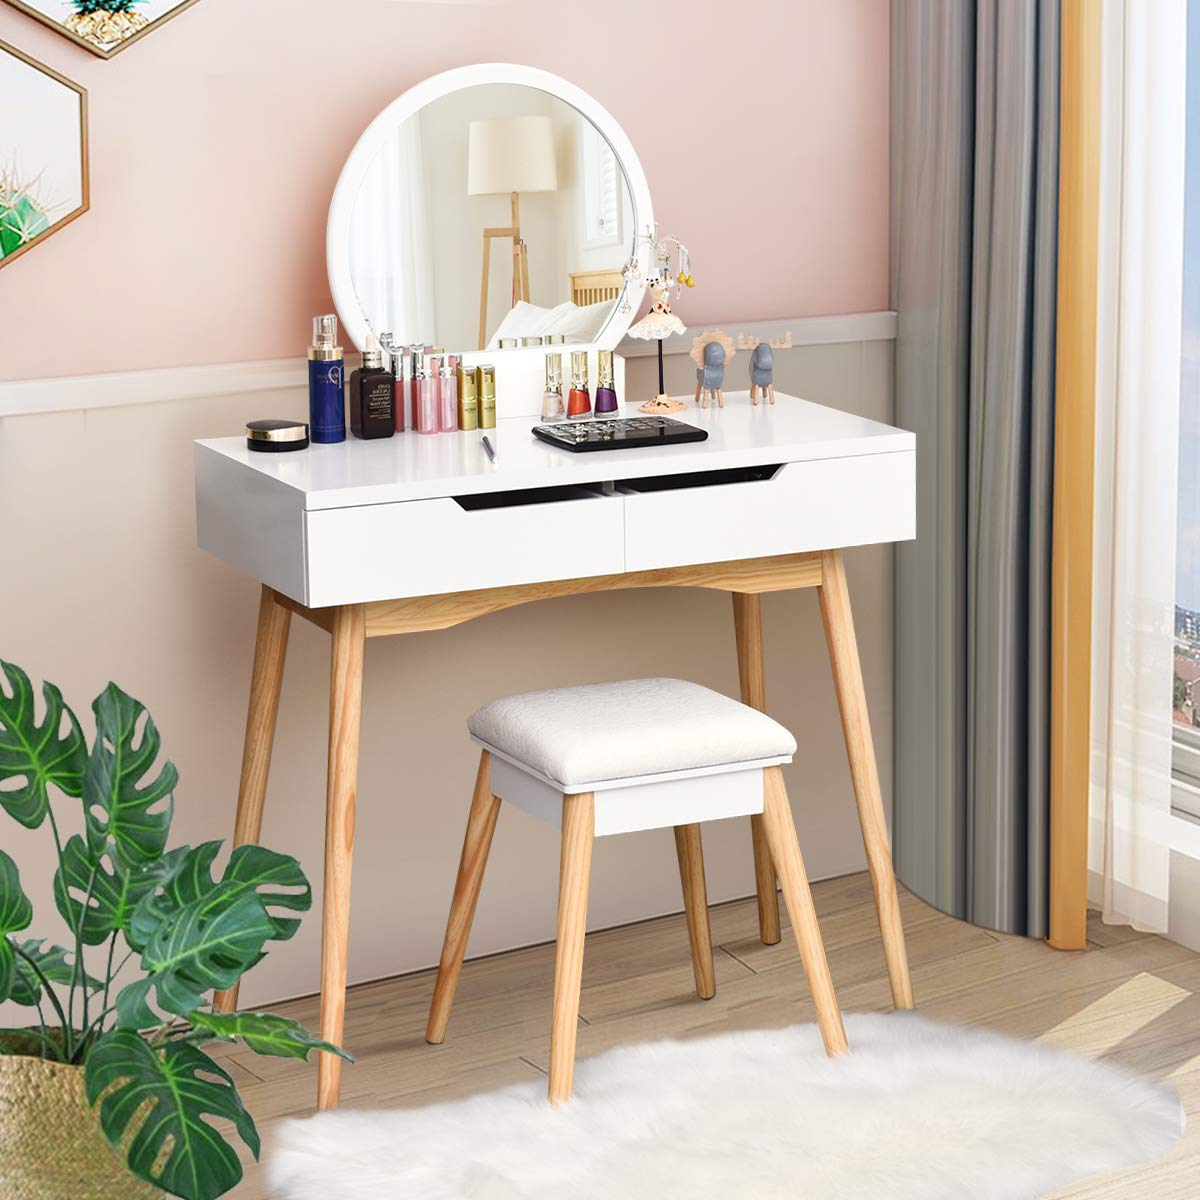 CHARMAID Vanity Table Set with Large Round Mirror and 2 Sliding Drawers, Makeup Table with Cushioned Stool and Solid Wood Legs, Modern Bedroom Dressing Table Set for Women Girls Kids White